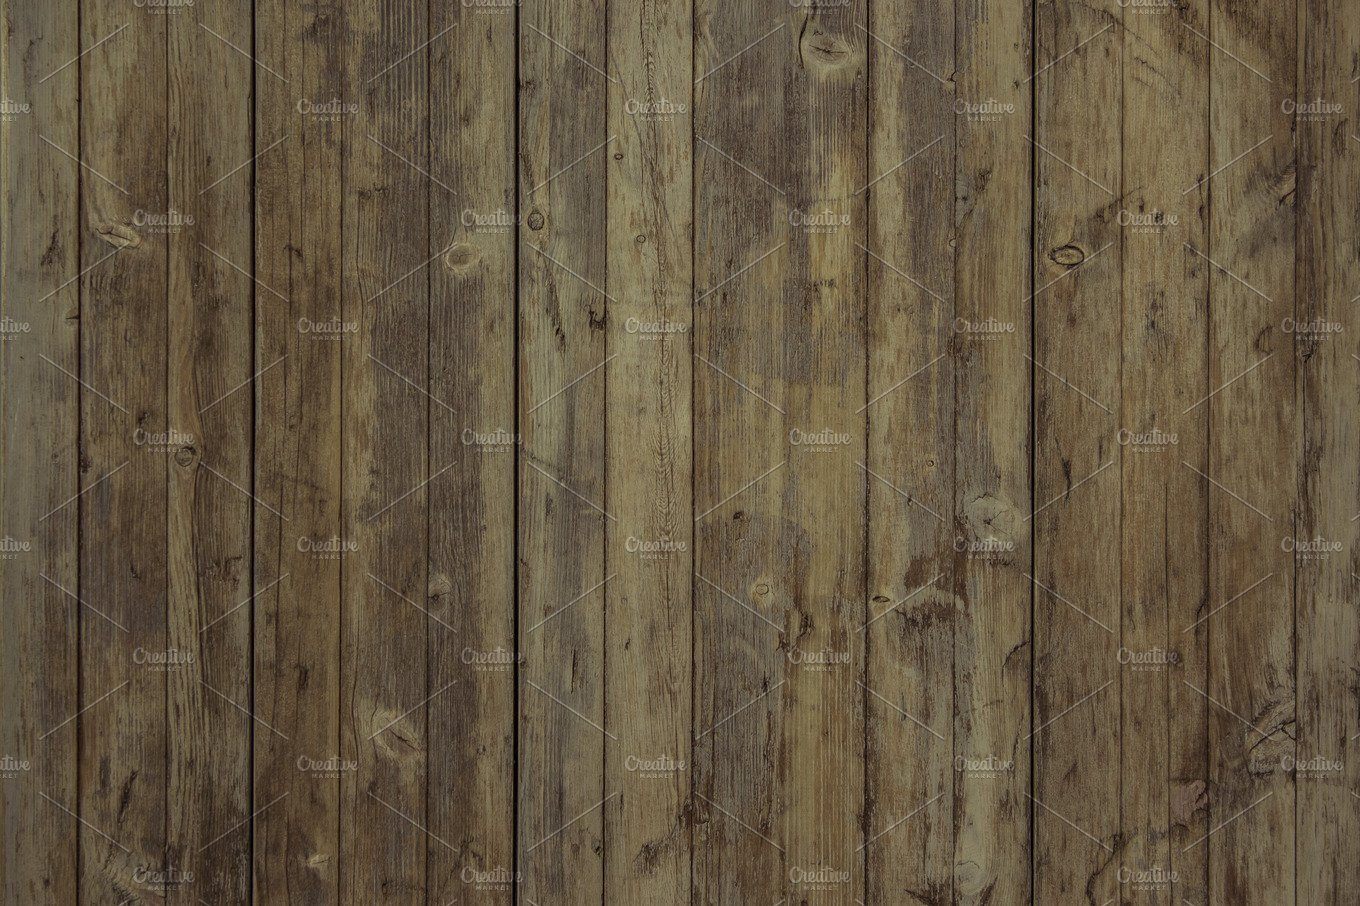 Distressed Wood Texture Iii Photos Creative Market